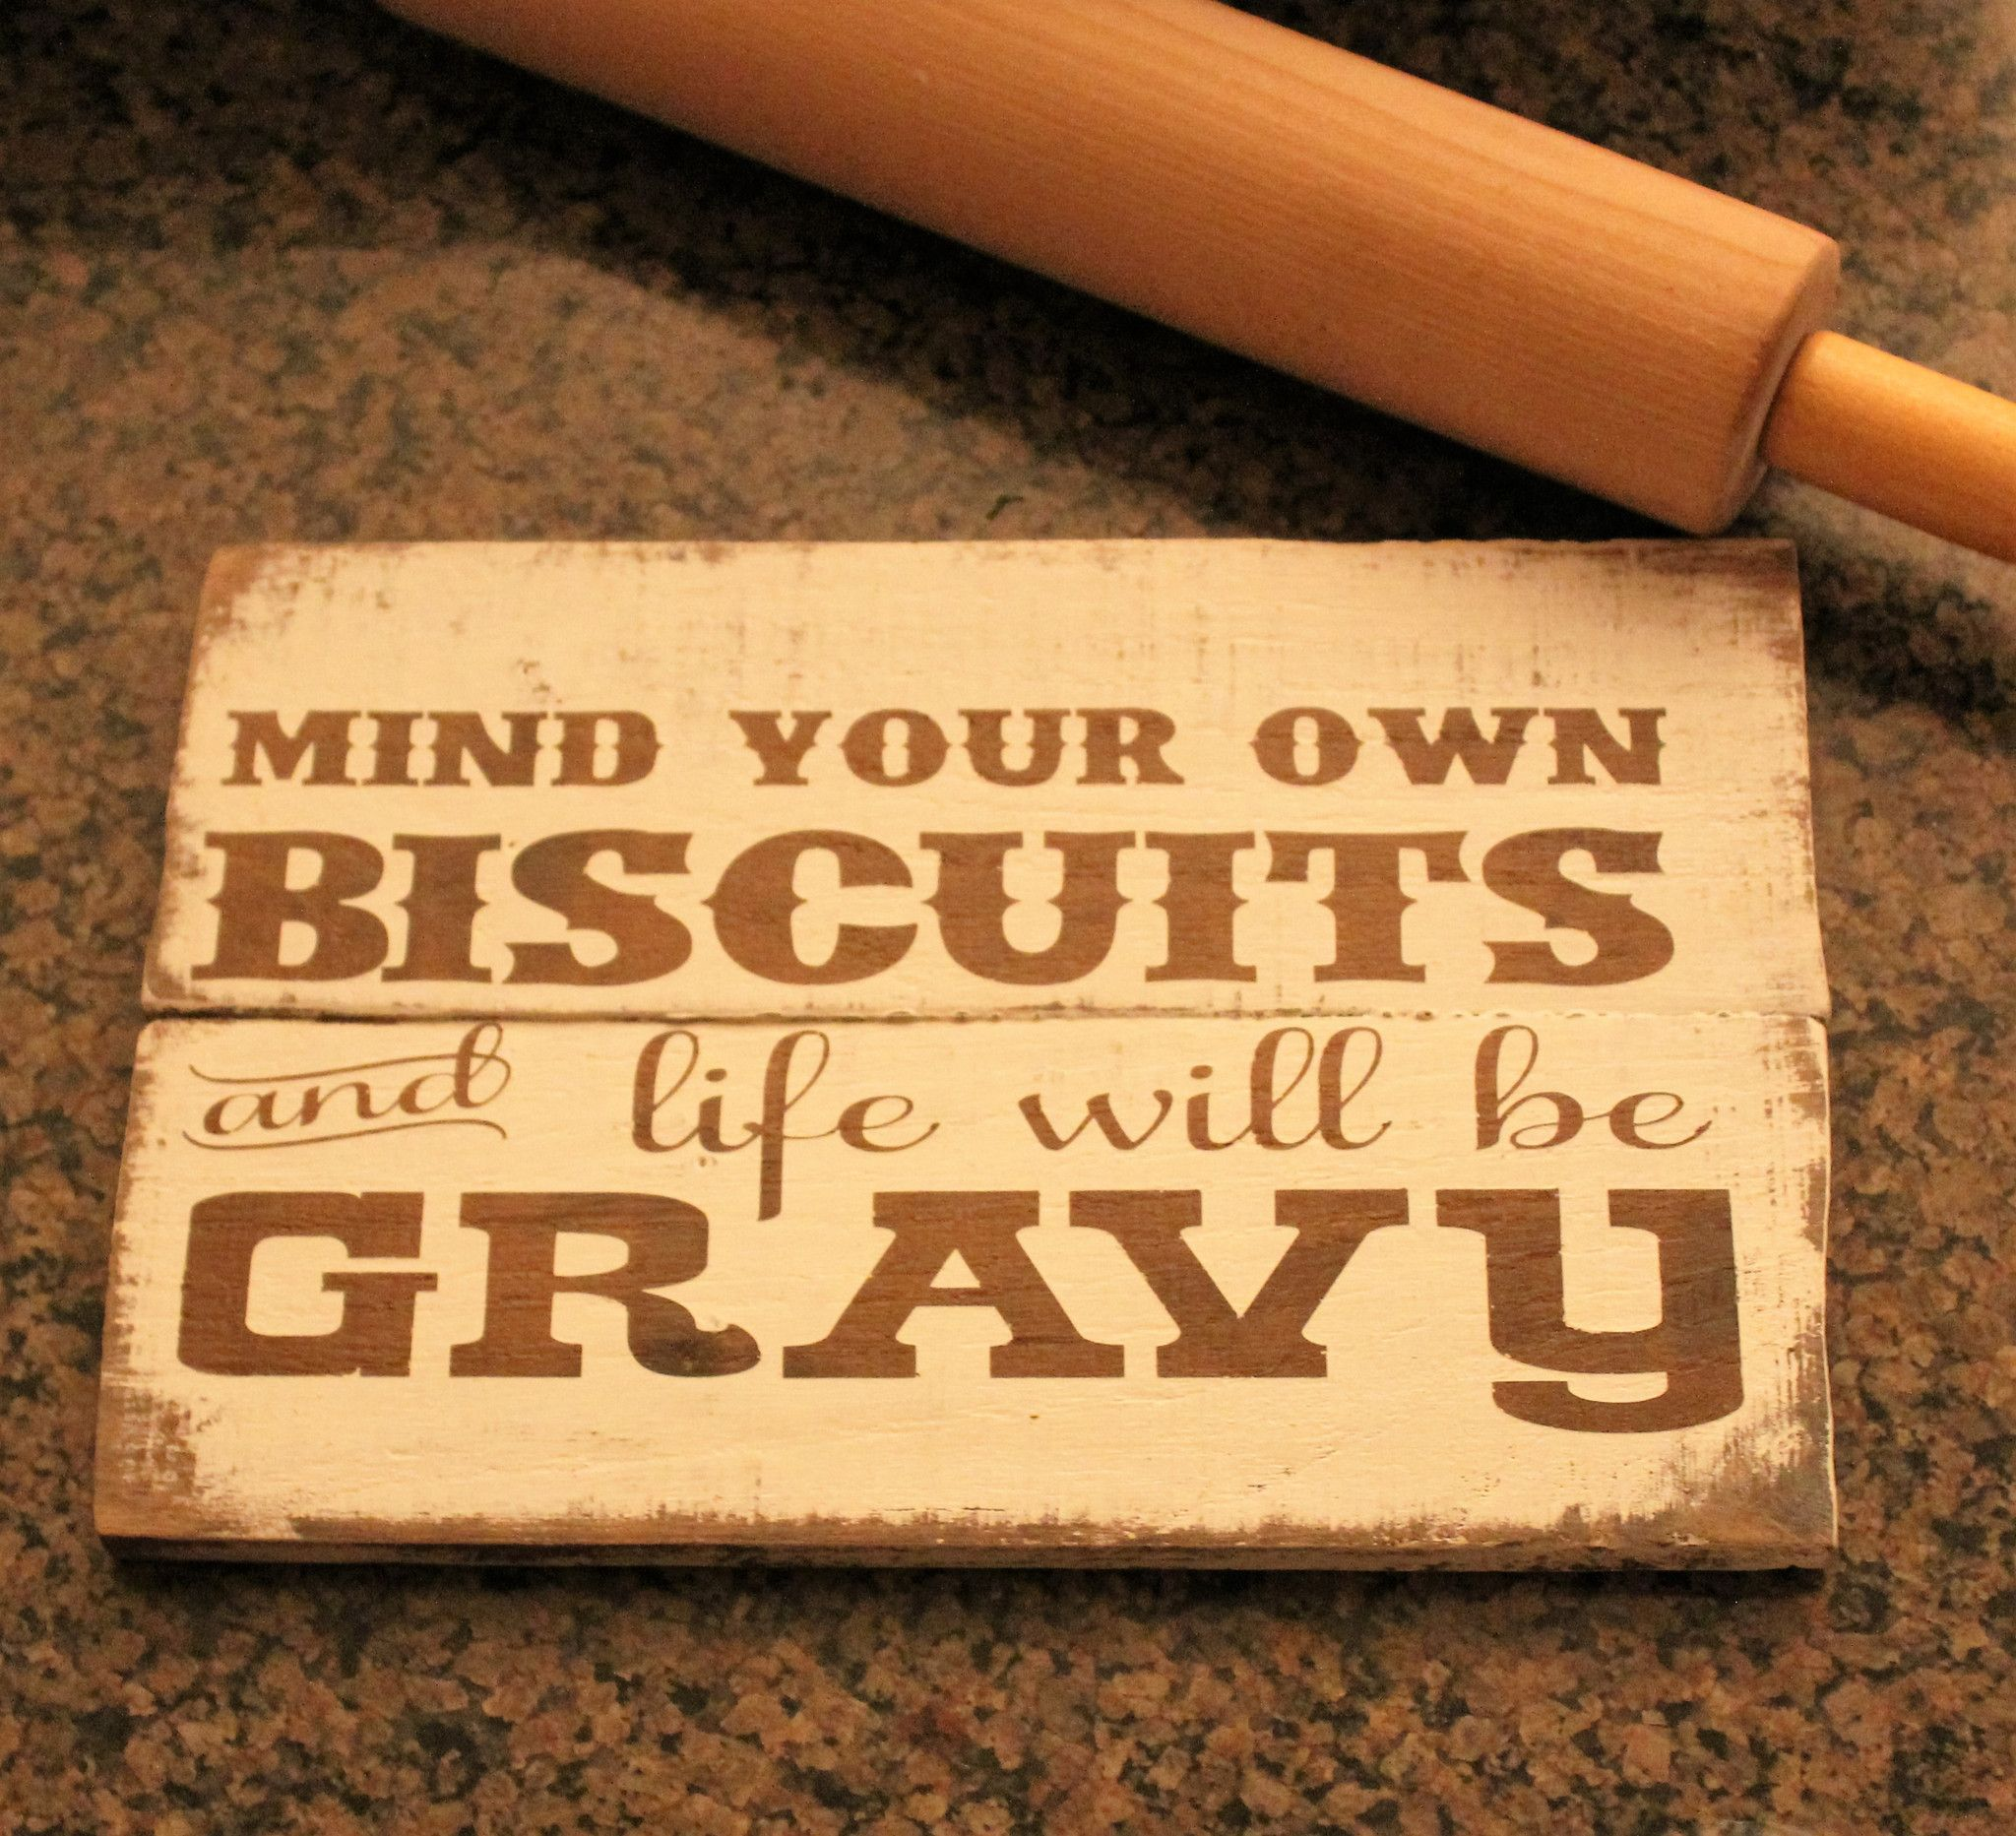 Country Kitchen Sayings And Quotes: Mind Your Own Biscuits And Life Will Be Gravy Carved